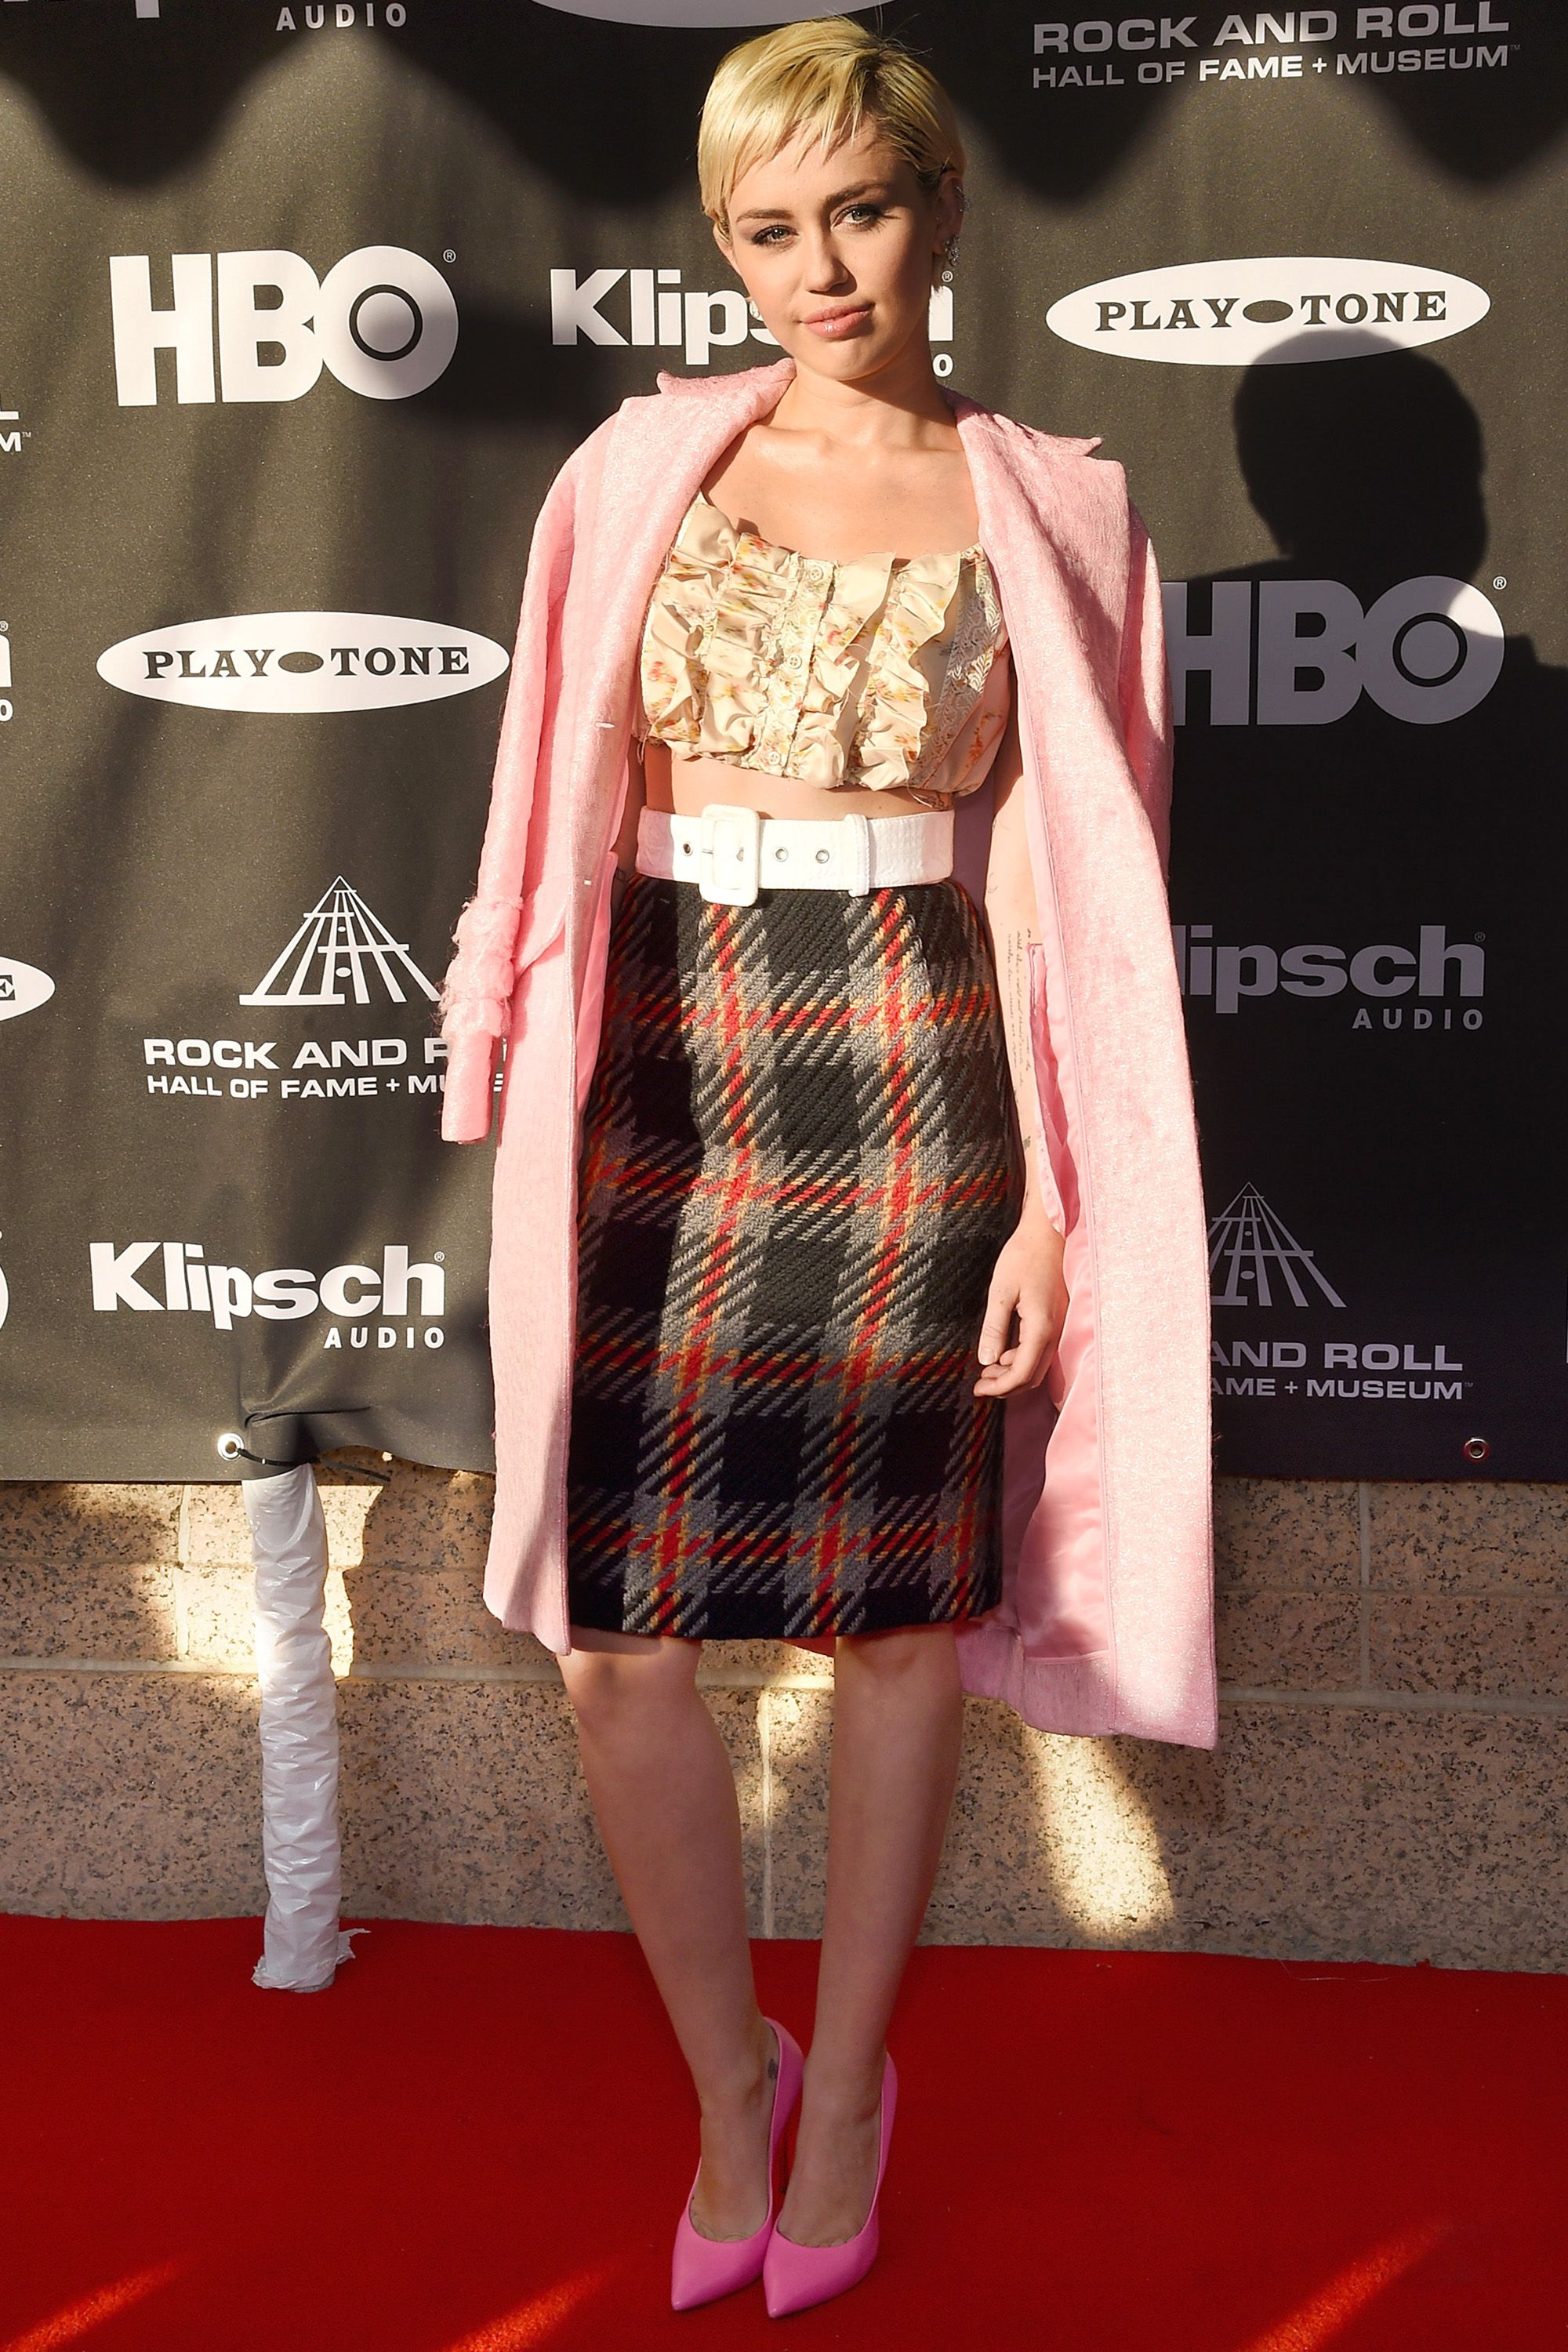 CLEVELAND, OH - APRIL 18:  Musician Miley Cyrus attends the 30th Annual Rock And Roll Hall Of Fame Induction Ceremony at Public Hall on April 18, 2015 in Cleveland, Ohio.  (Photo by Dimitrios Kambouris/WireImage for Rock and Roll Hall of Fame)